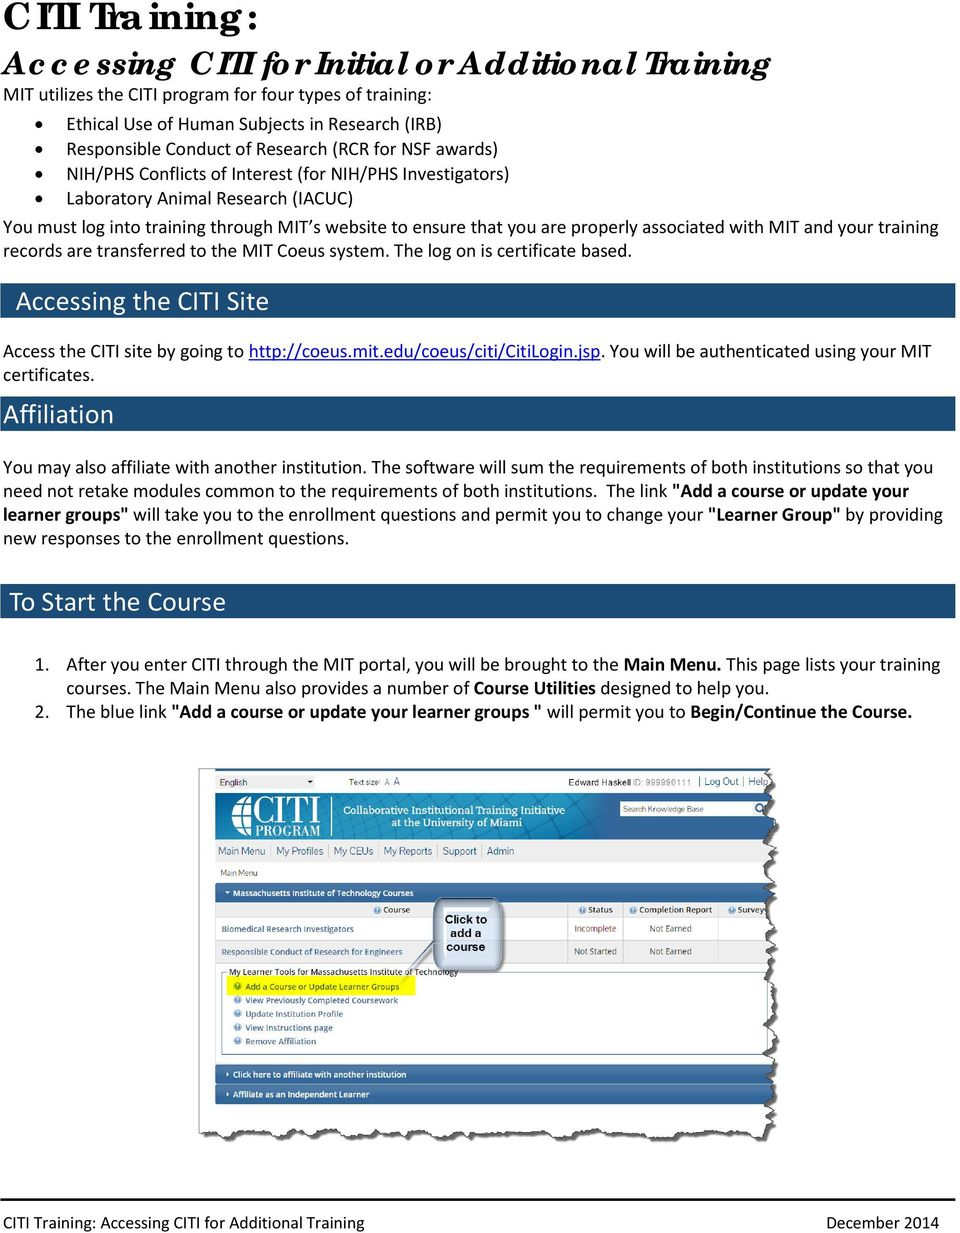 CITI Training: Accessing CITI for Initial or Additional Training - PDF